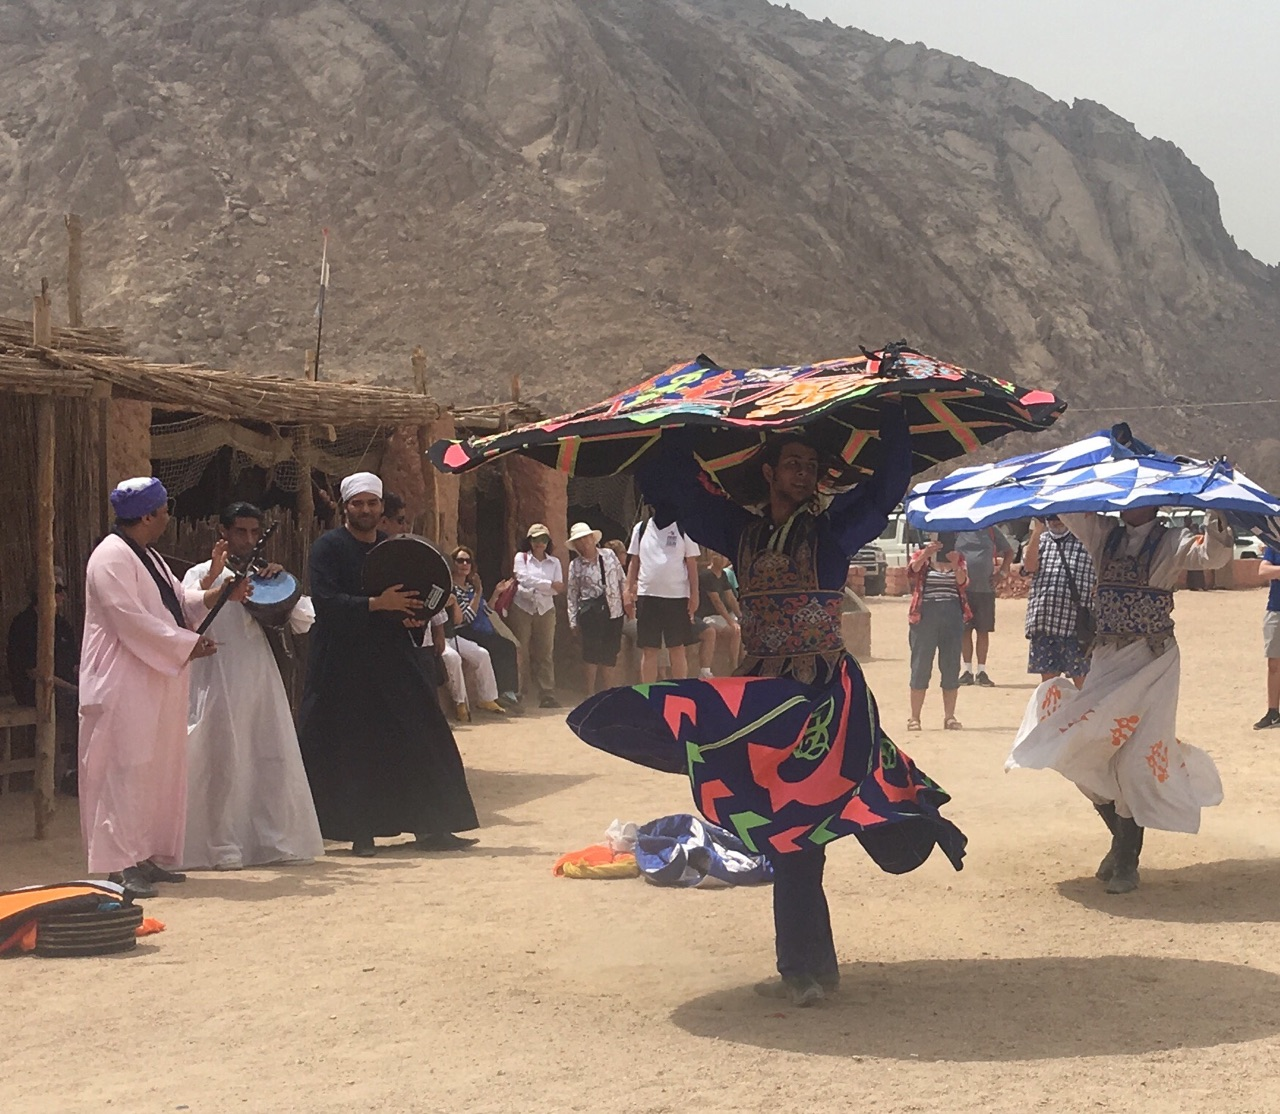 Bedouin dancers and musicians